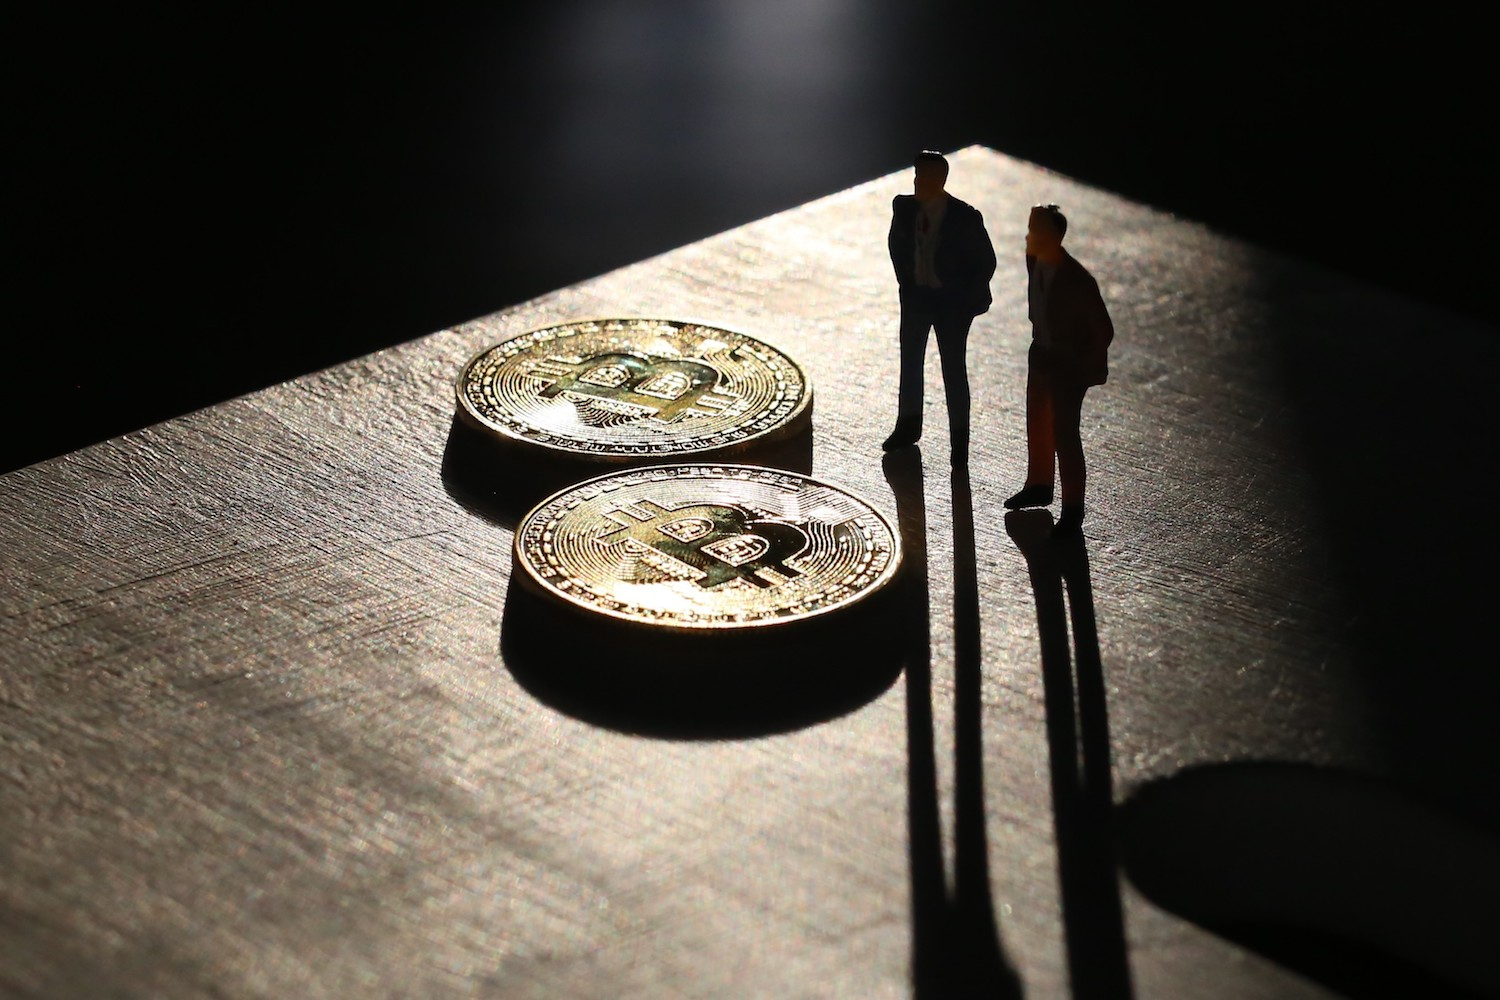 'Onerous' FATF Recommendations Harmful for Crypto Transparency: Chainalysis